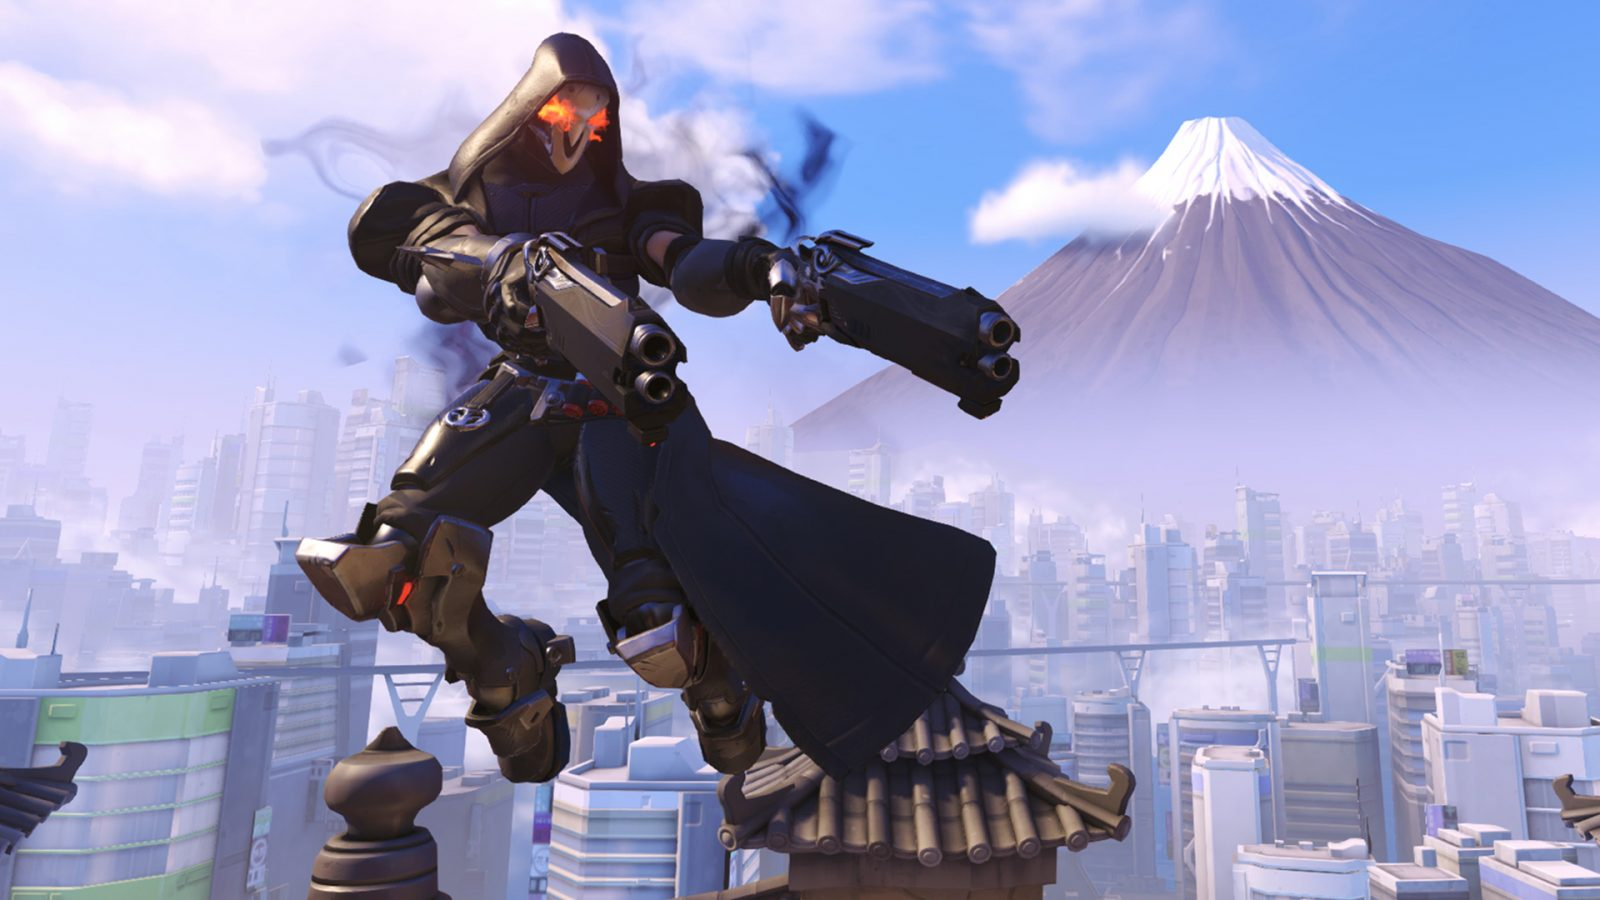 Overwatch porn delivers the biggest payload in 2019